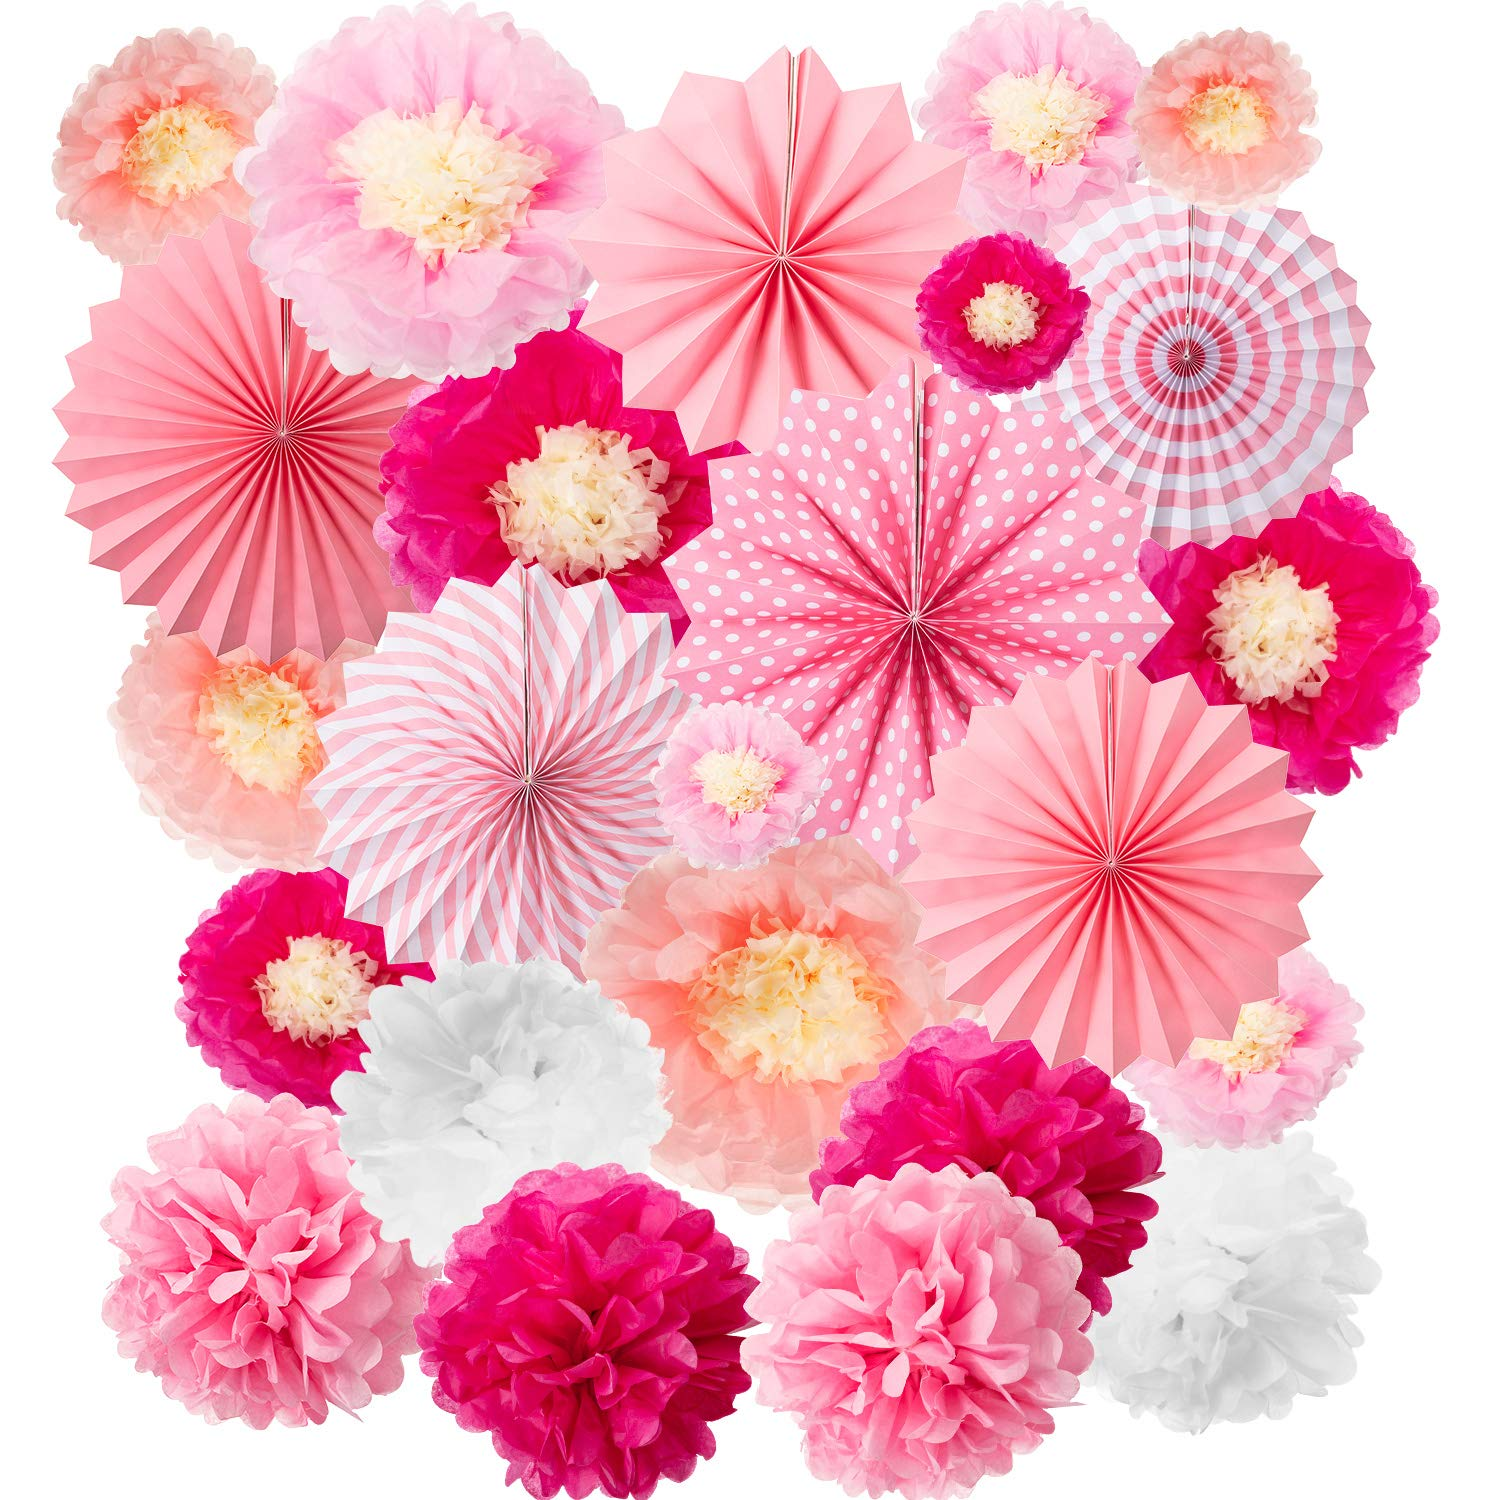 24 Pieces Party Hanging Set, Including 12 Tissue Paper Flowers Decorations, 6 Pink Paper Fans Garlands Decoration, 6 Paper Poms Ball Decoration Flowers Craft Kit for Birthday Baby Shower Festival by WILLBOND